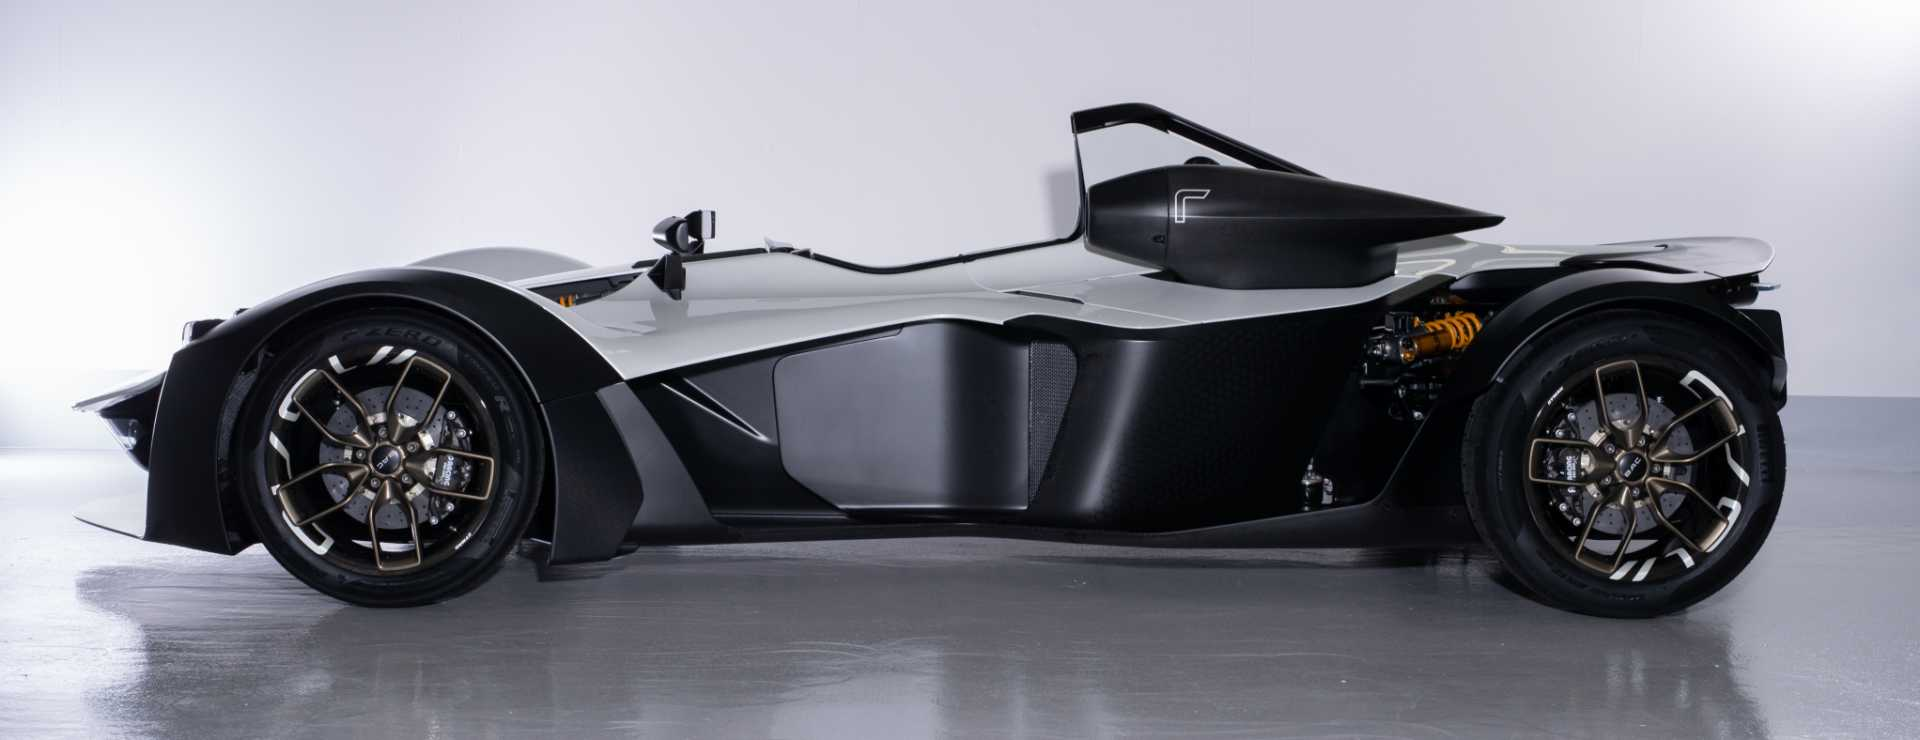 Side View - BAC Mono R Supercar - image courtesy of Stratasys / Briggs Automotive Company